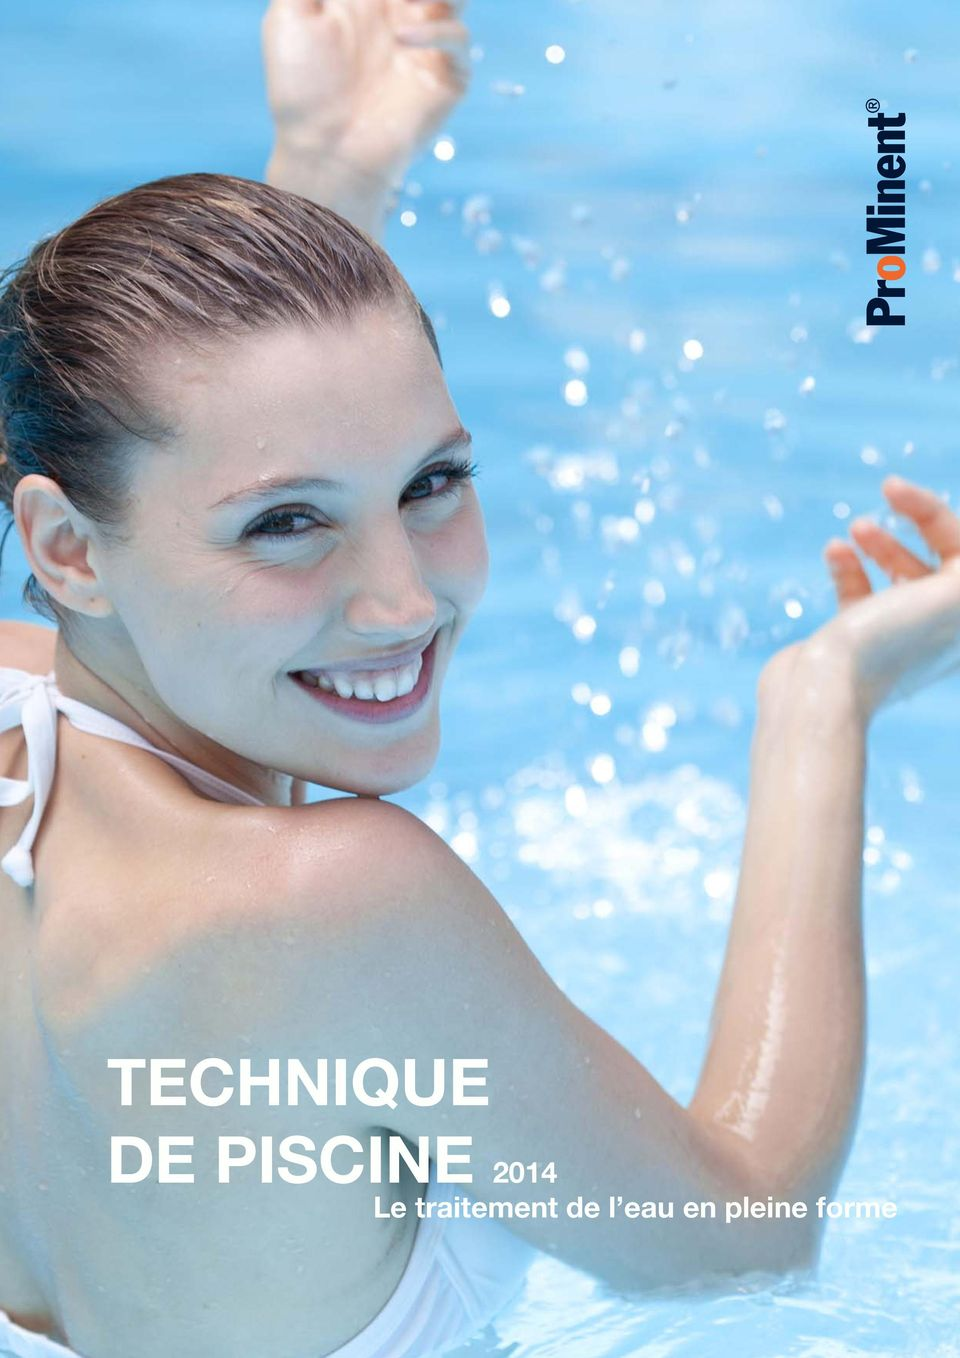 technique de piscine le traitement de l eau en pleine forme pdf. Black Bedroom Furniture Sets. Home Design Ideas